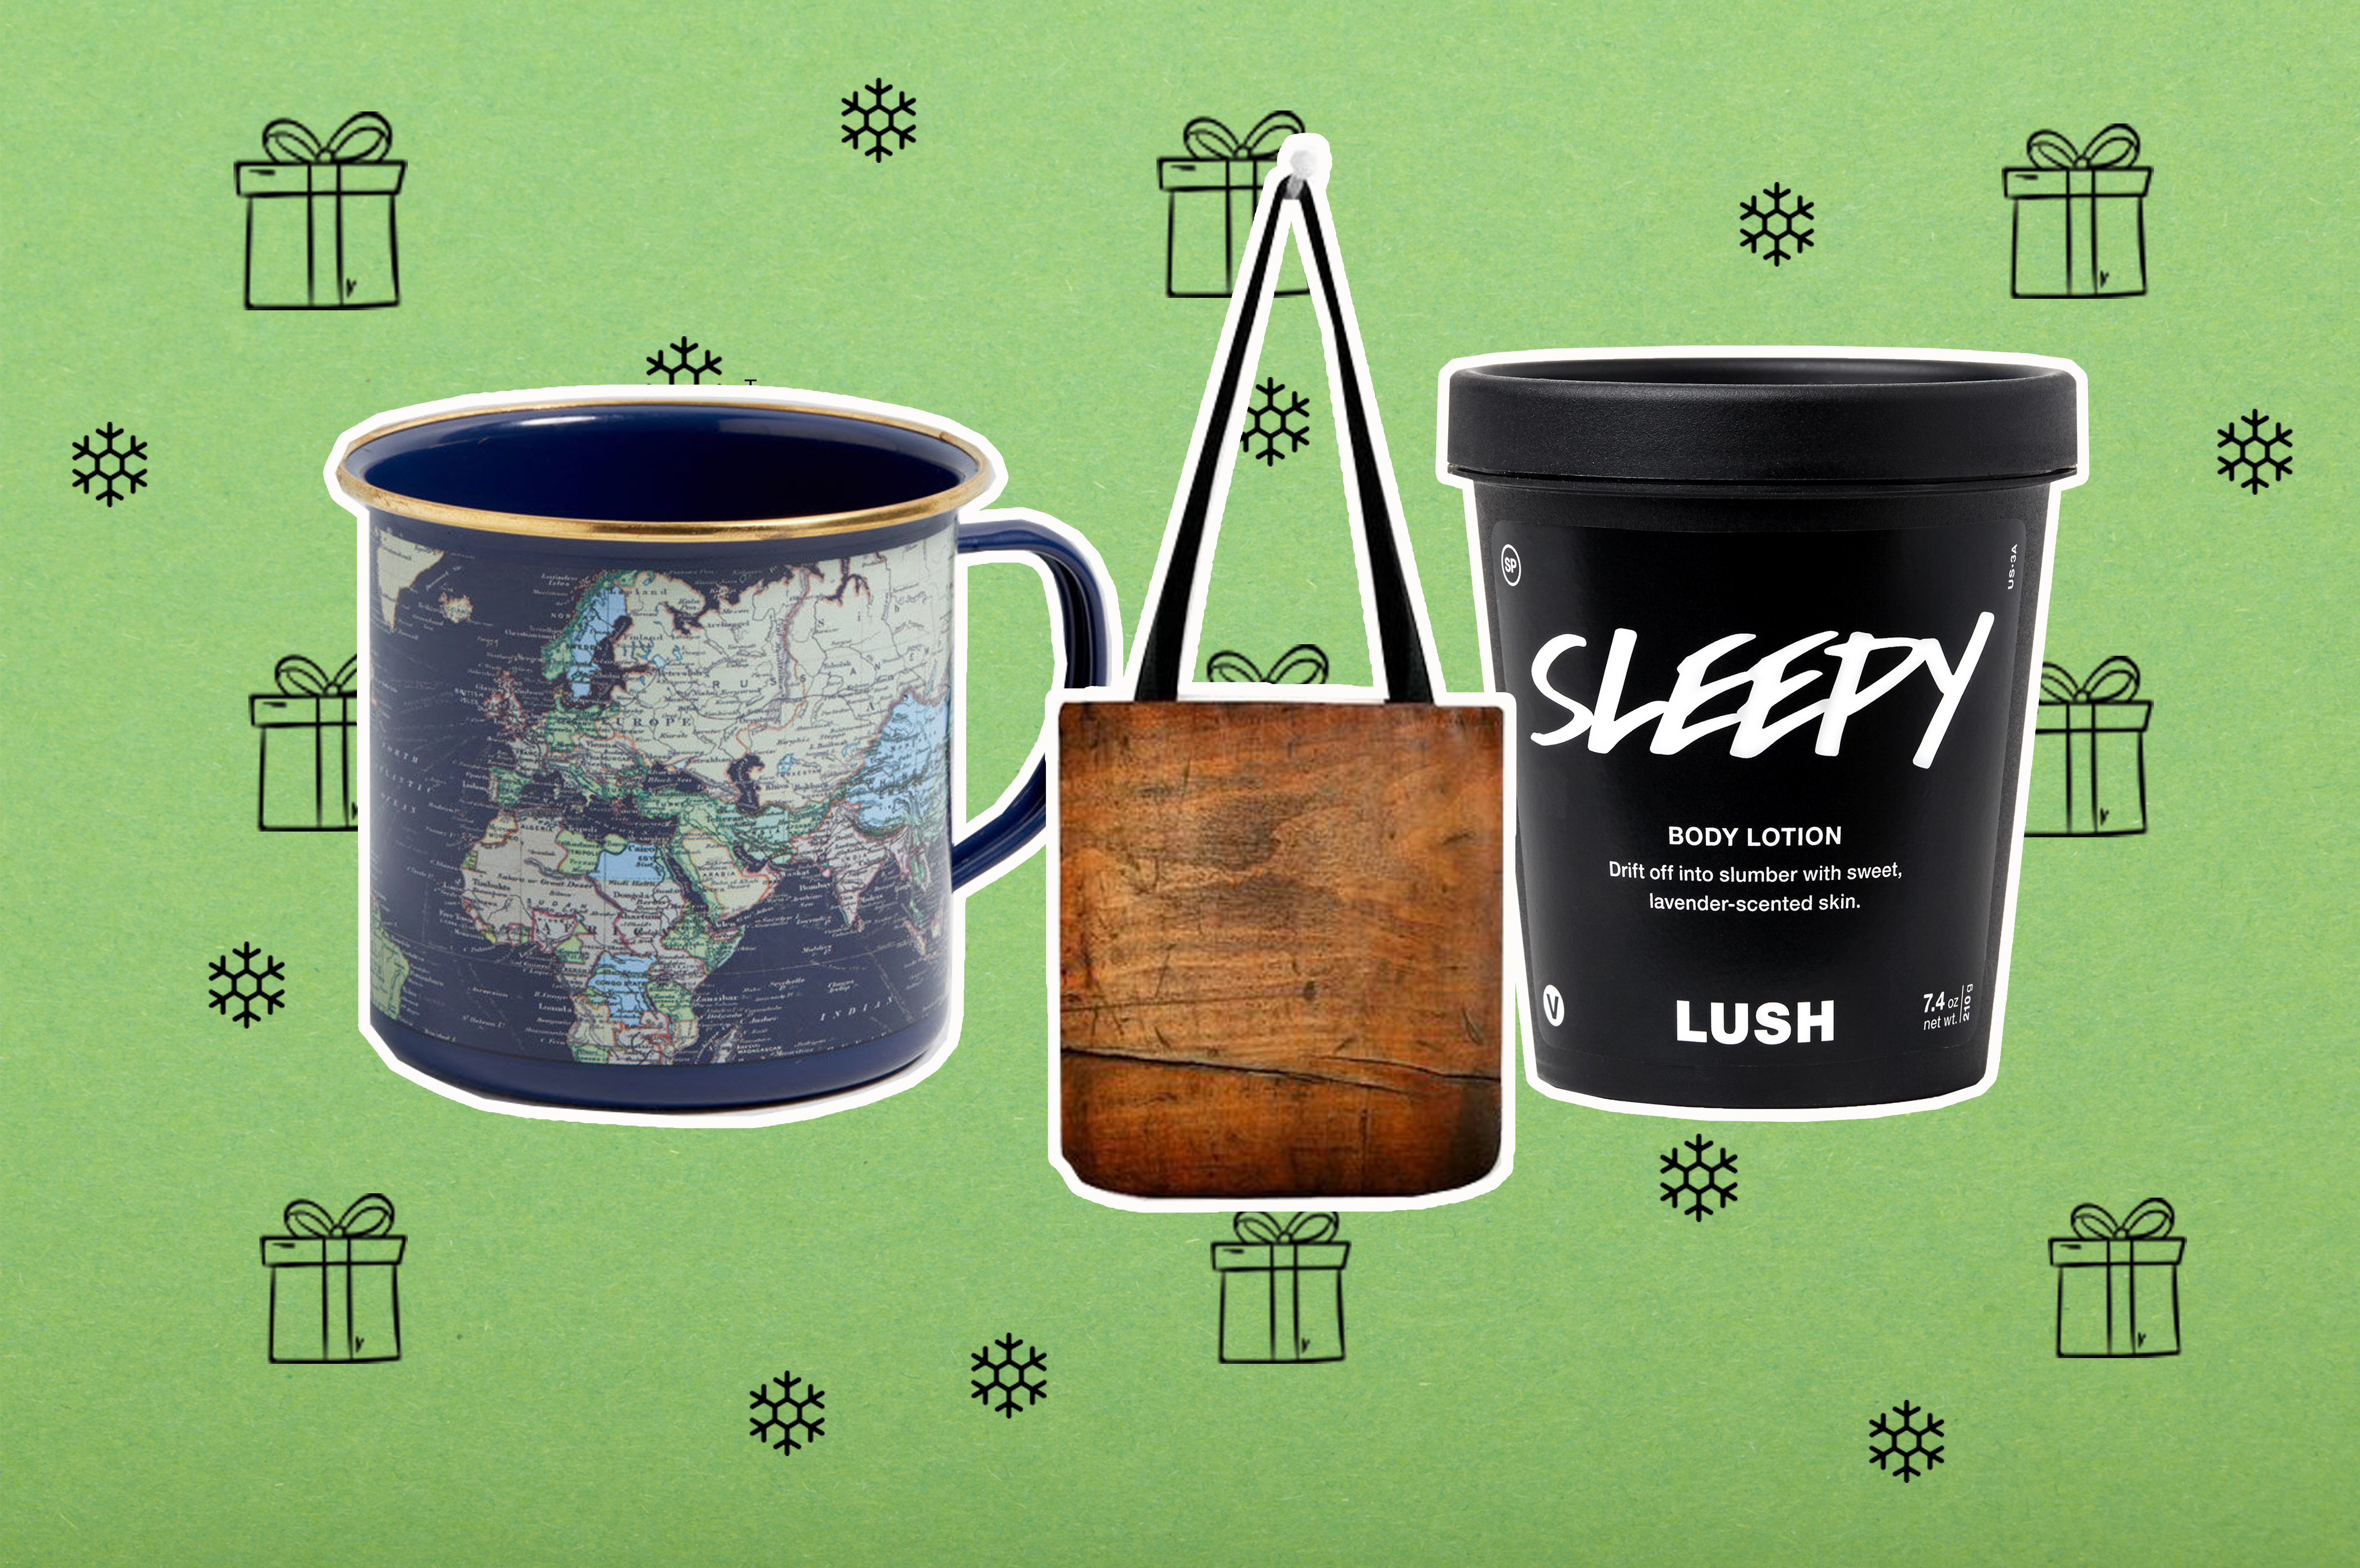 17 nice gifts to get for people you don't know very well